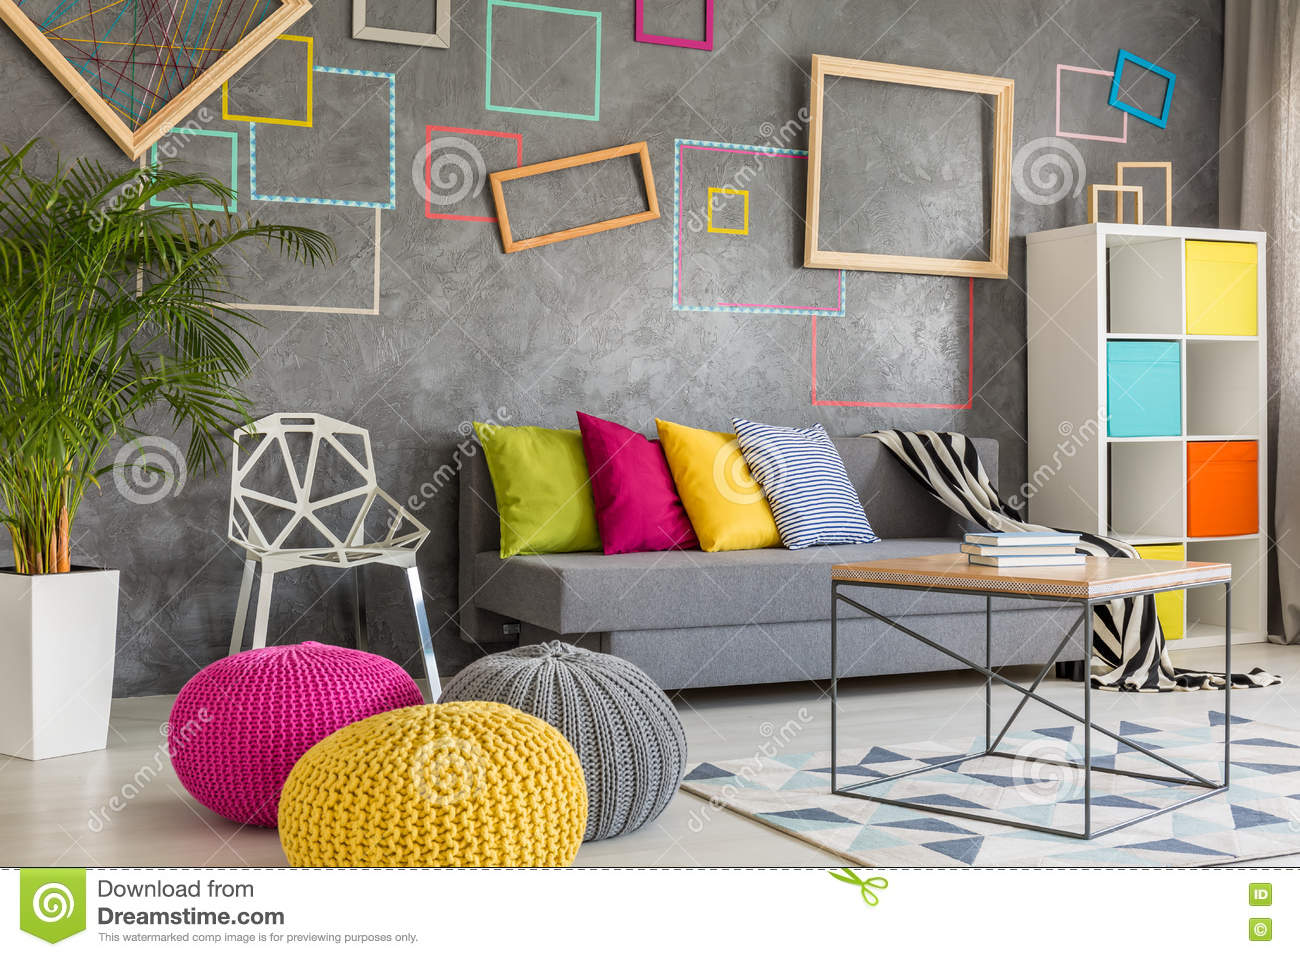 Living Room With Wool Poufs Stock Photo - Image: 79161215